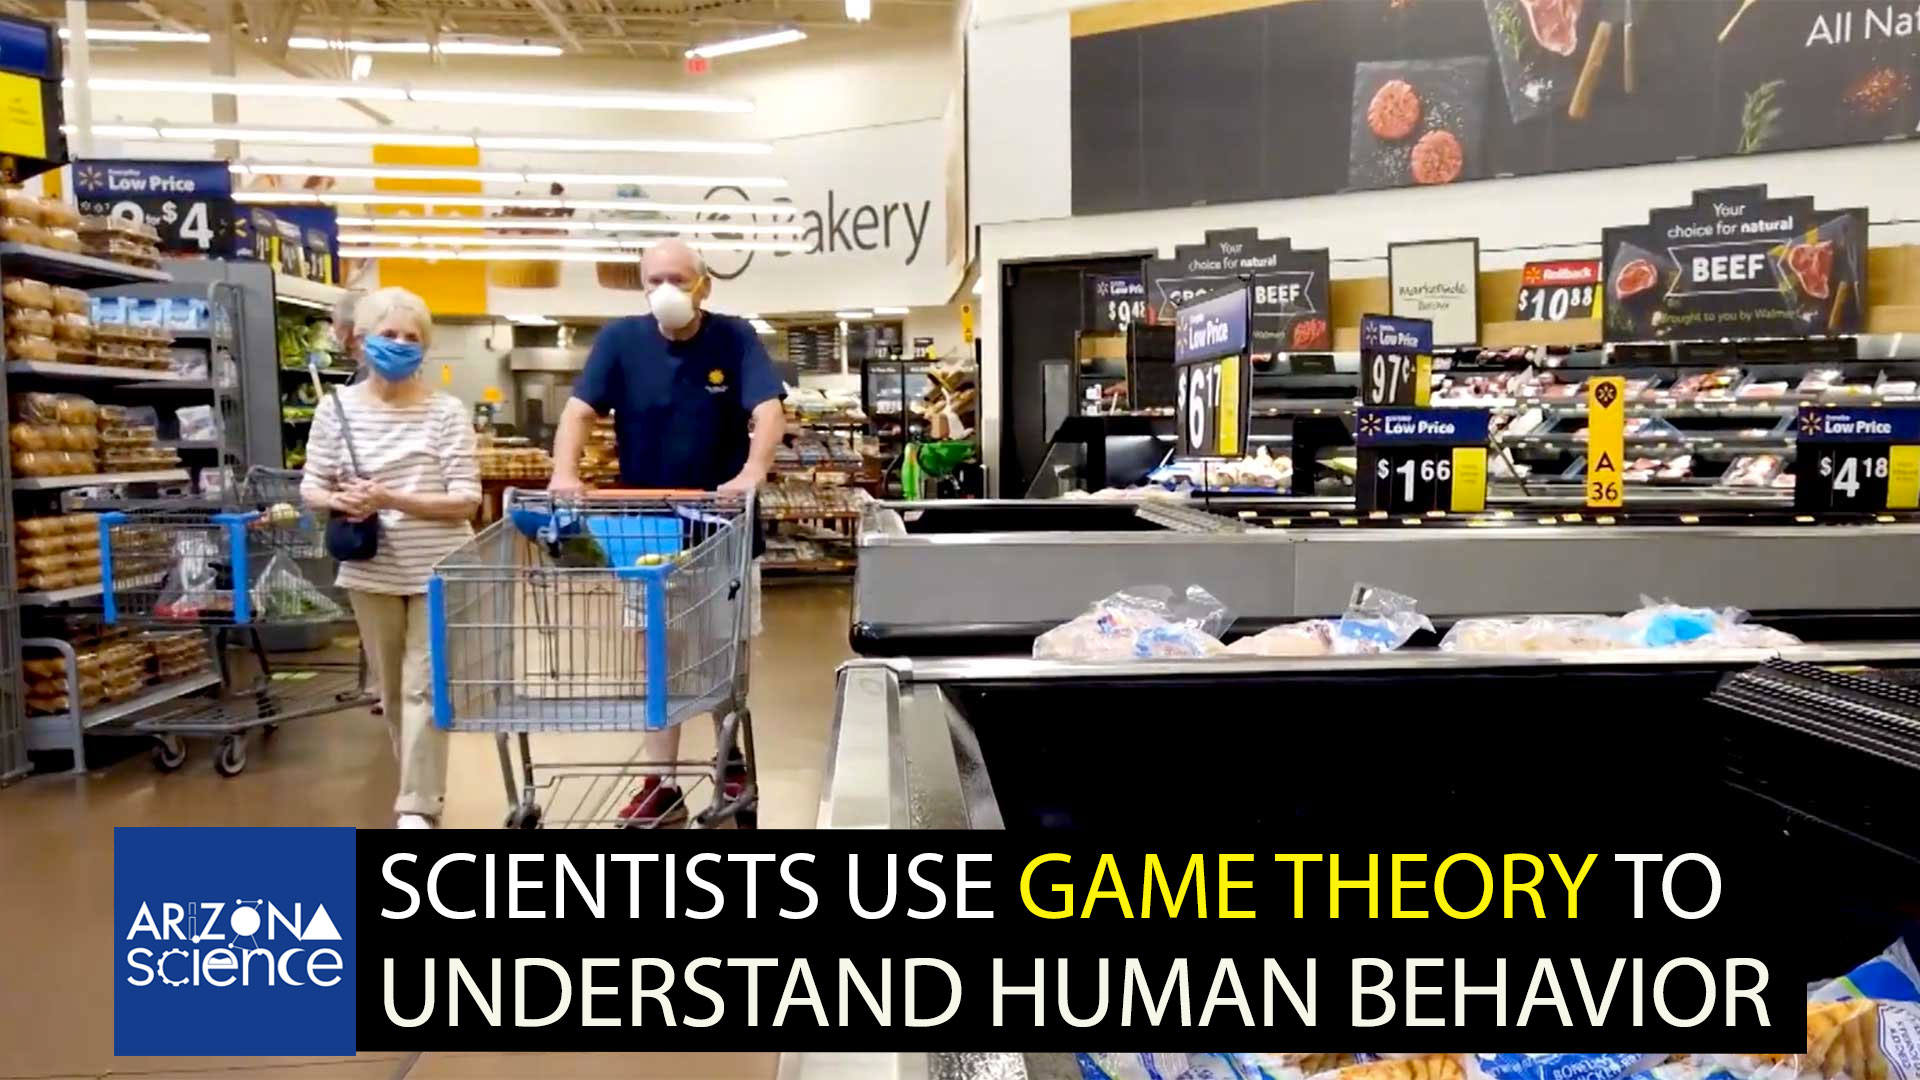 Scientists use game theory to understand human behavior.